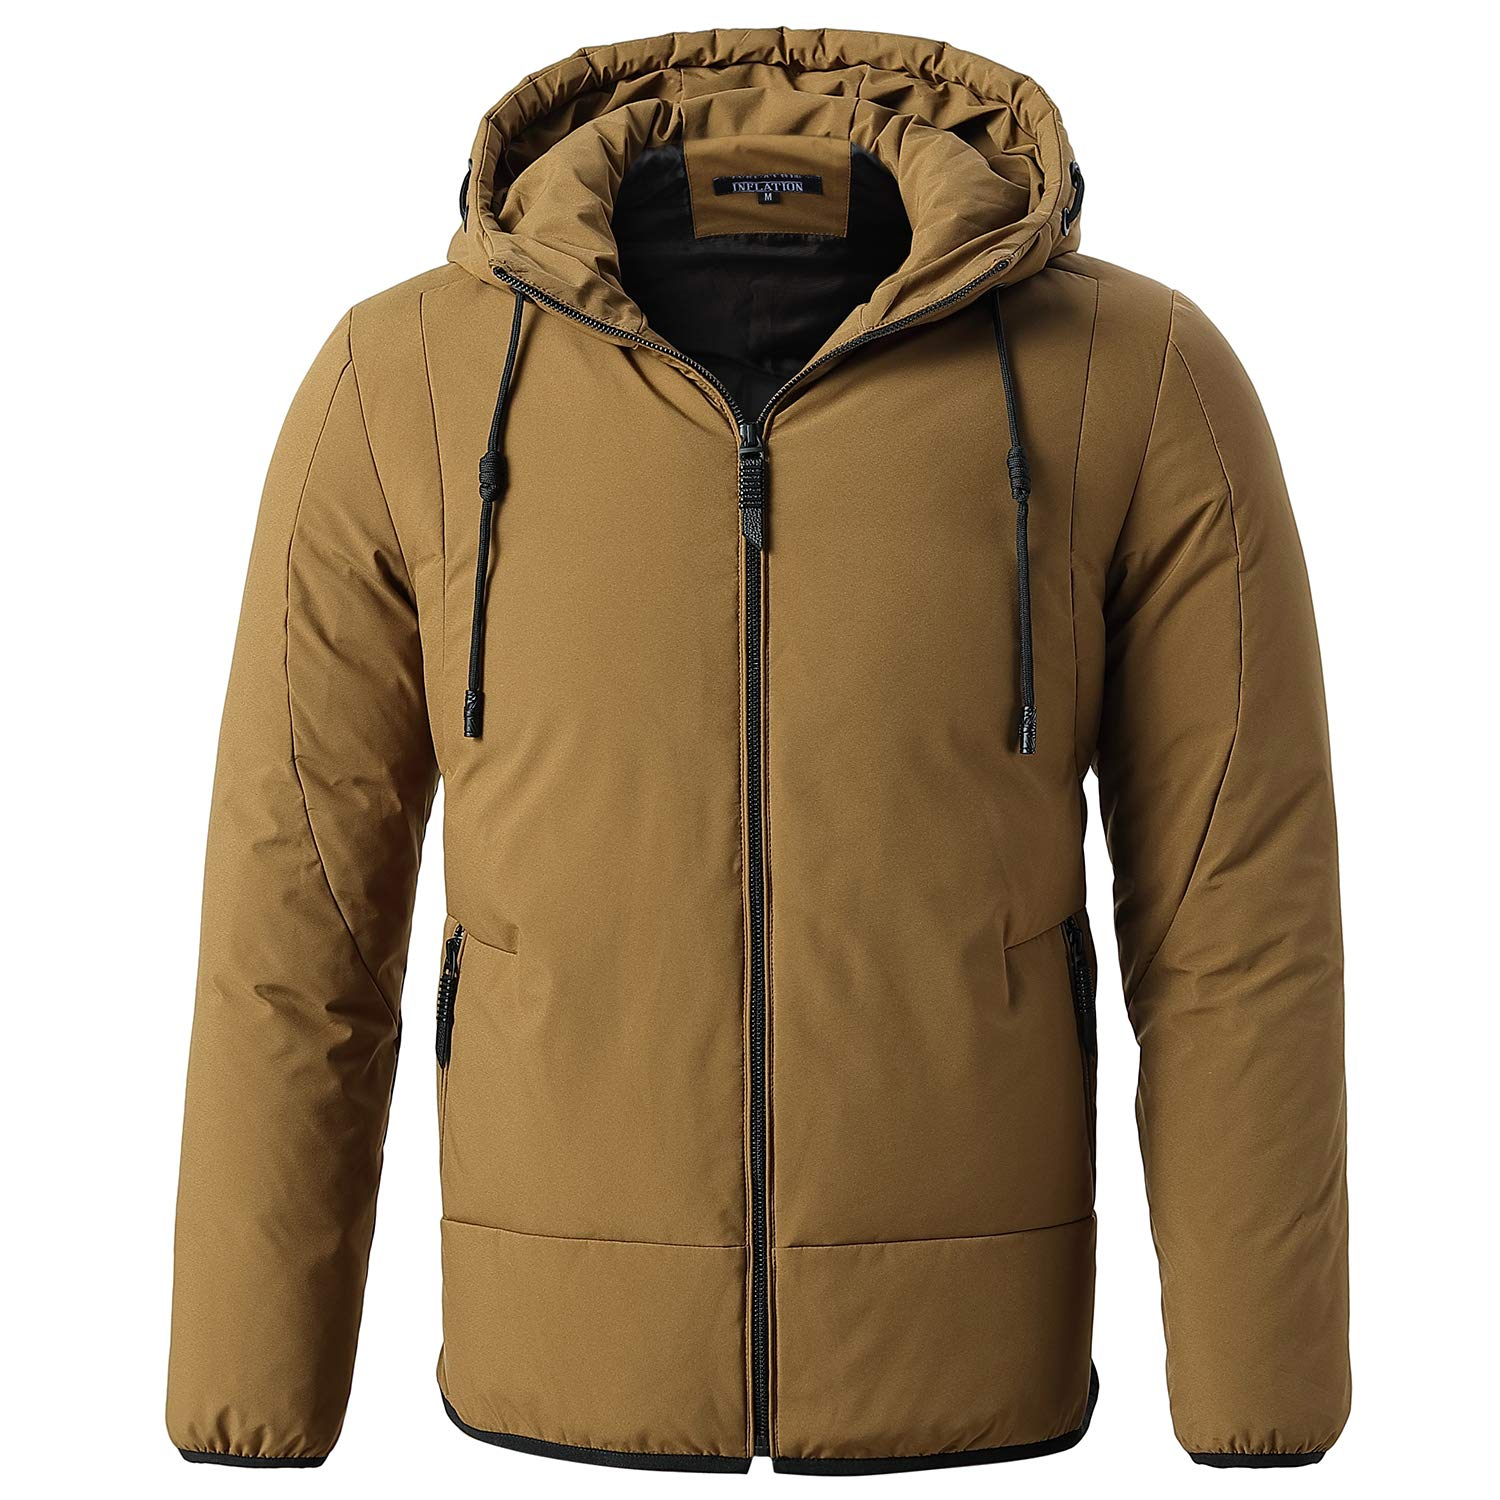 Mens Short Down Hooded Jacket Thickened Puffer Jacket Coats Quilted Padded Outwear with Hood Collar Winter Coats for Men for Outdoor Sport,Black//Camel//Grey//Navy Blue